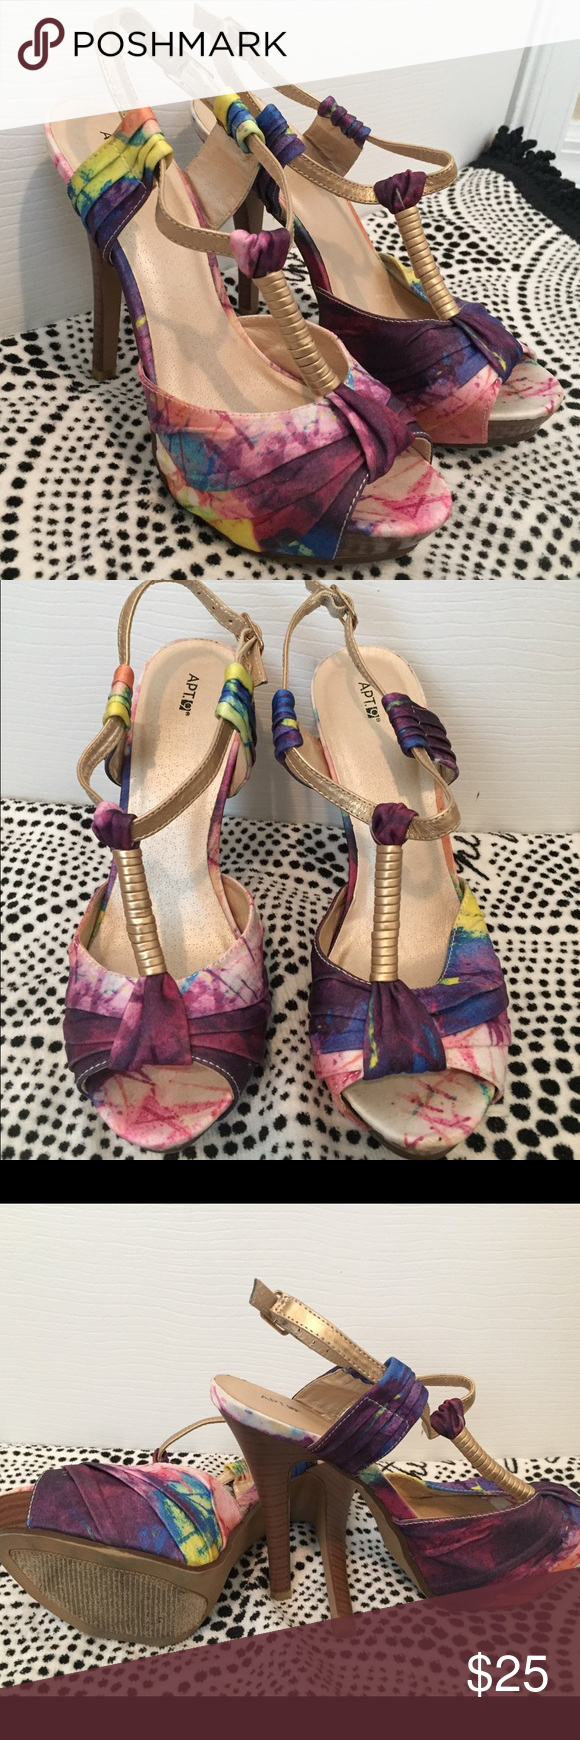 """Apt. 9 multi-colored heels Multi colored heels. Worn once, and in great condition. 5"""" heel height. Apt. 9 Shoes Heels"""